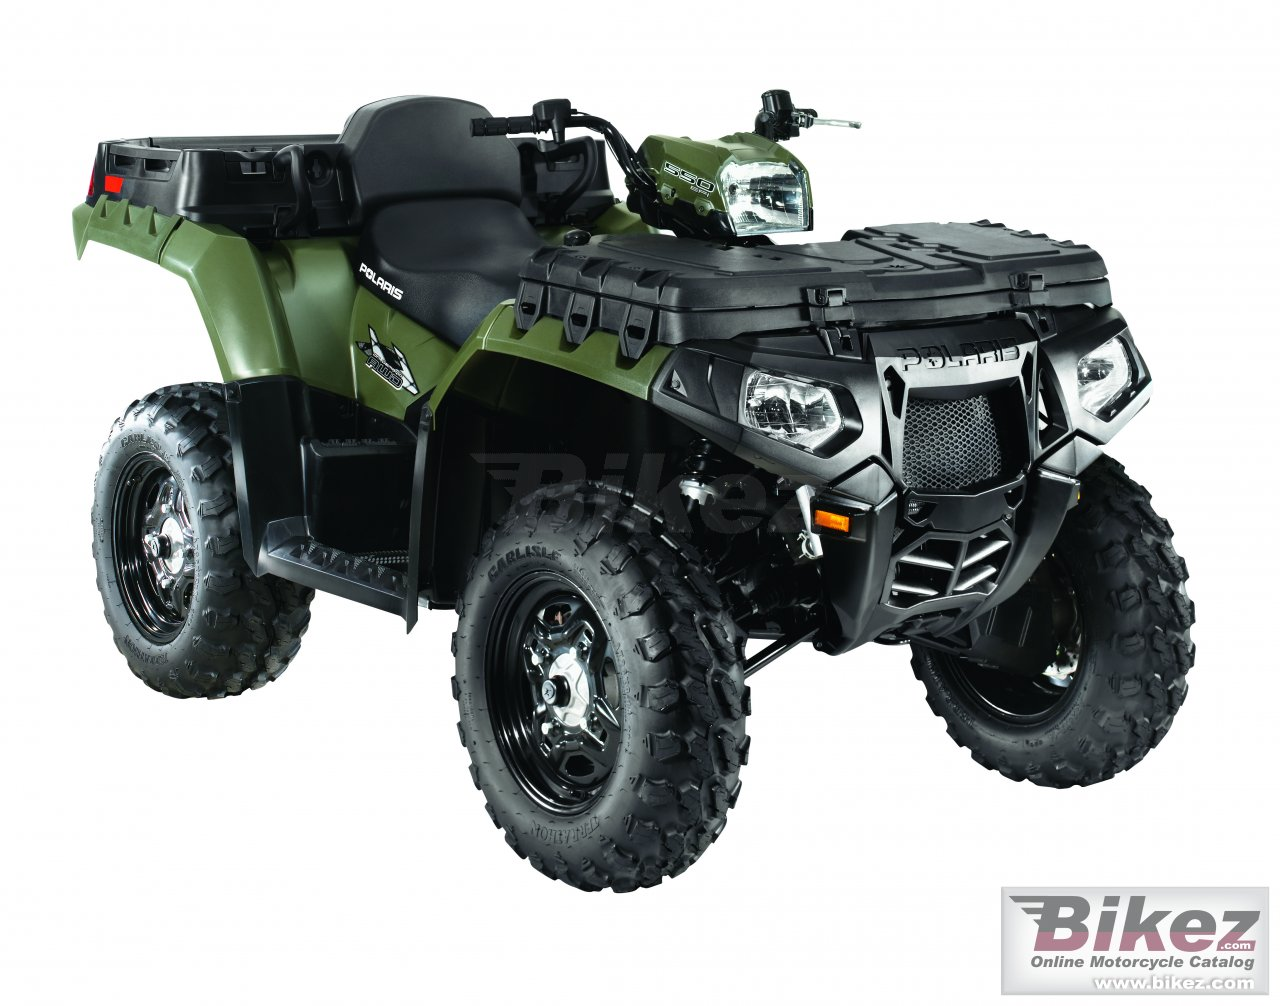 Polaris sportsman 550 x2